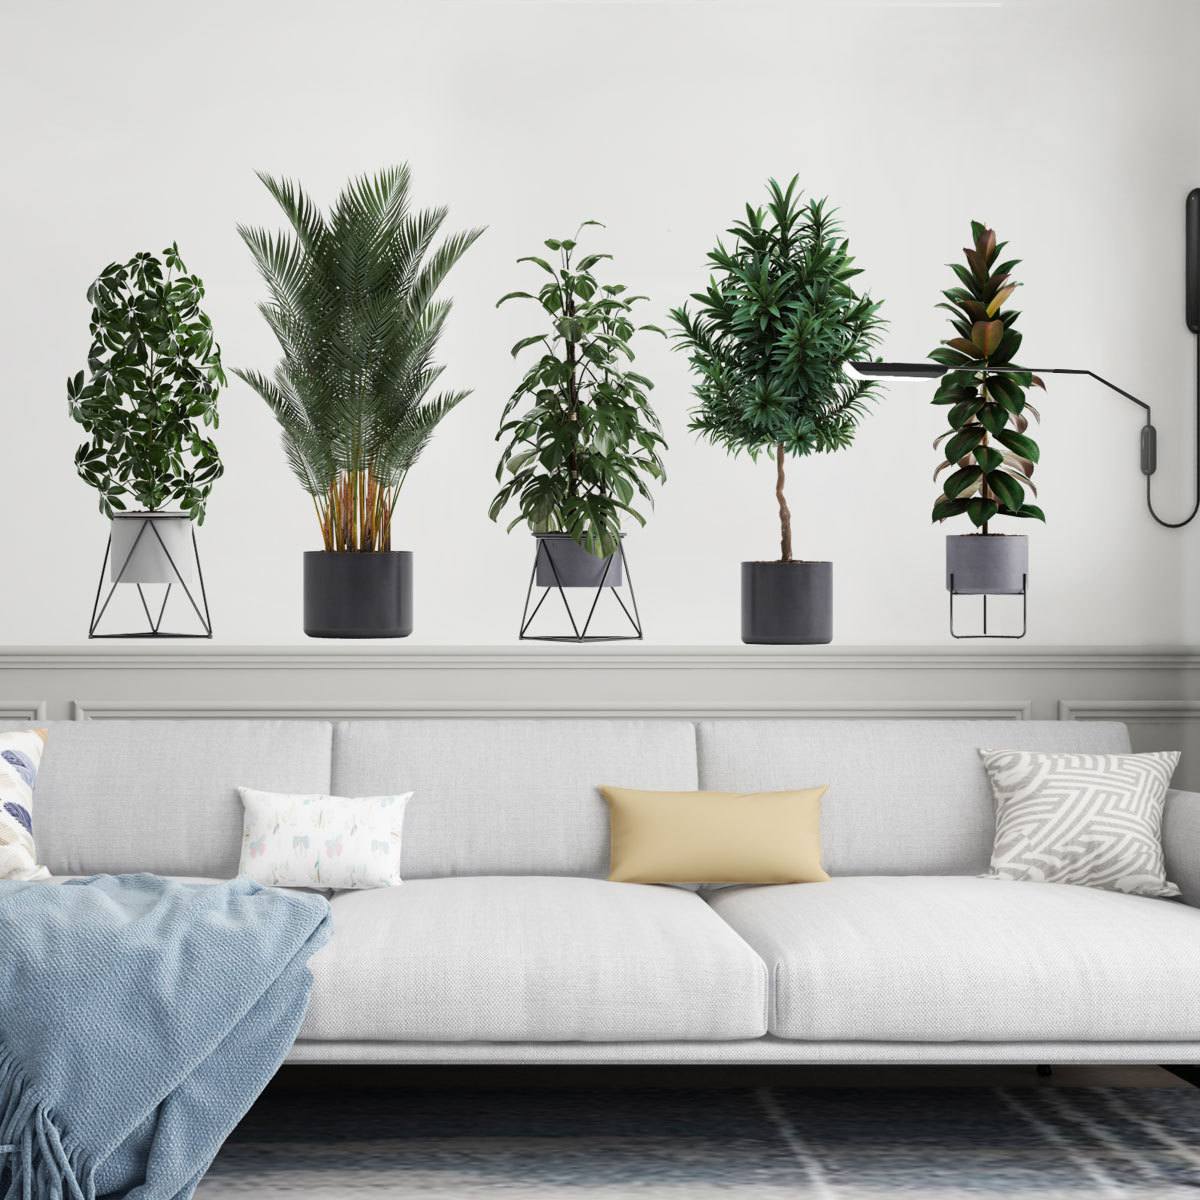 Creative wall stickers 3D green plants potted three-dimensional living room background decoration stickers